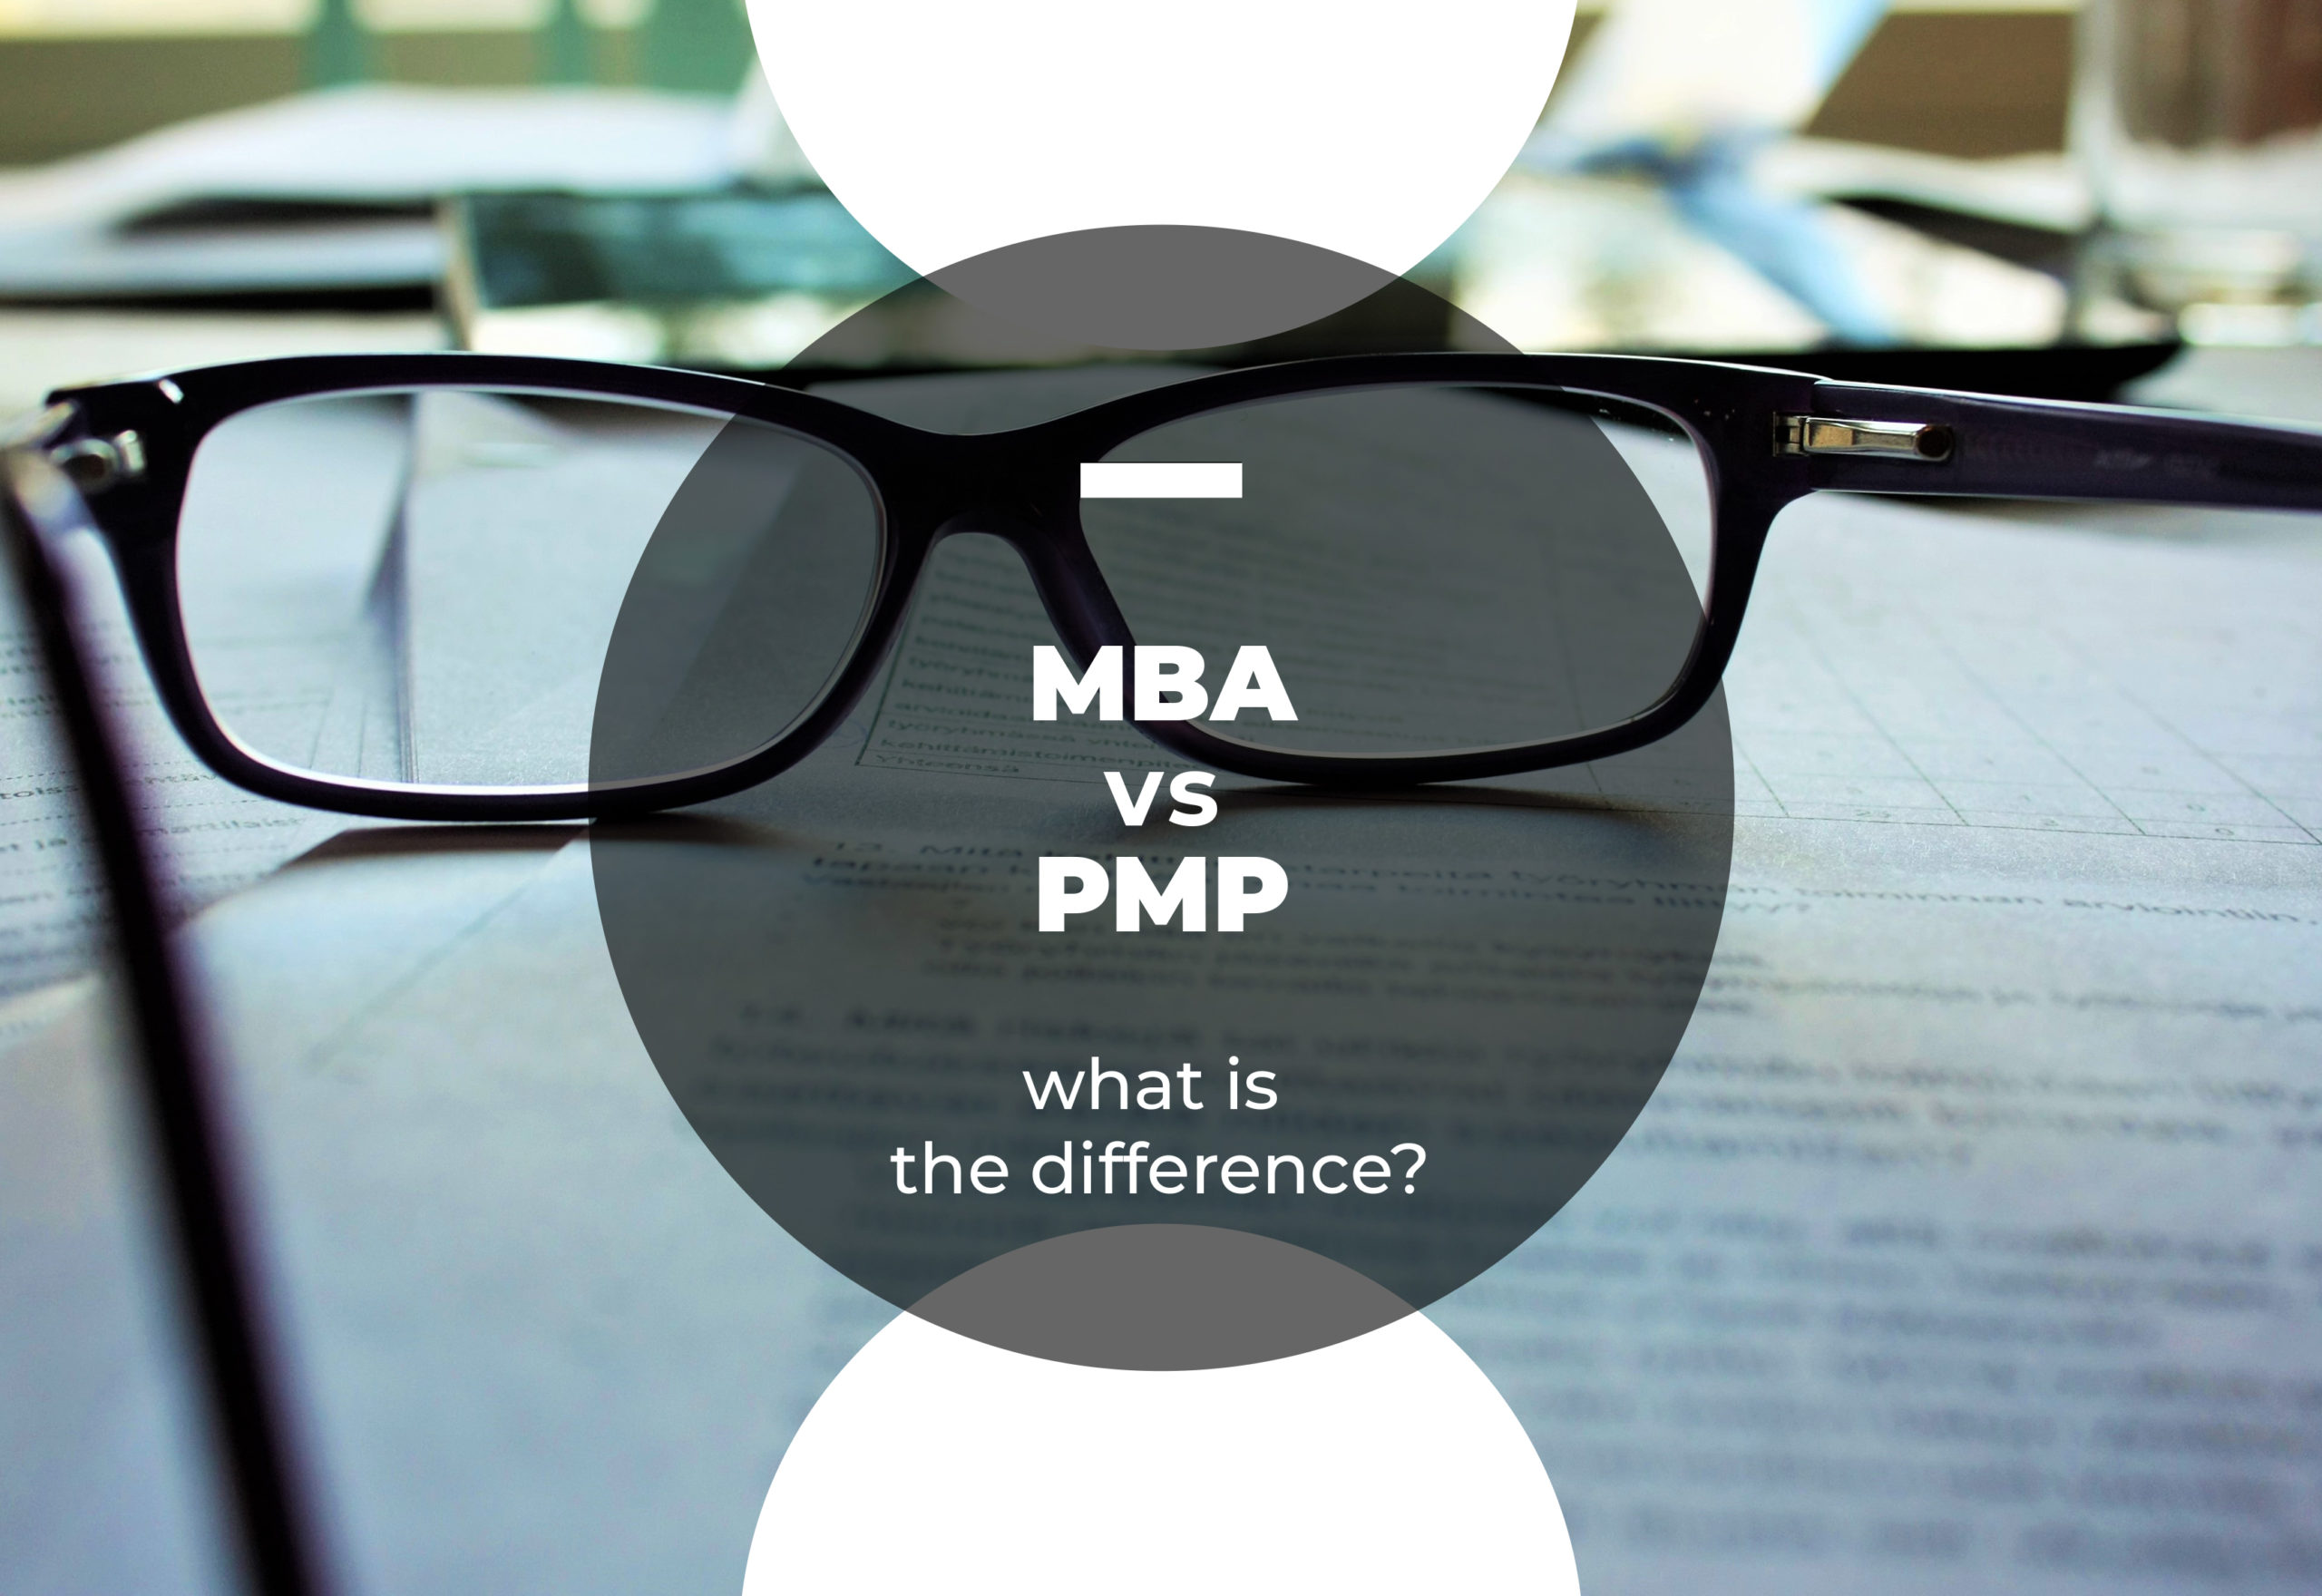 MBA and PMP